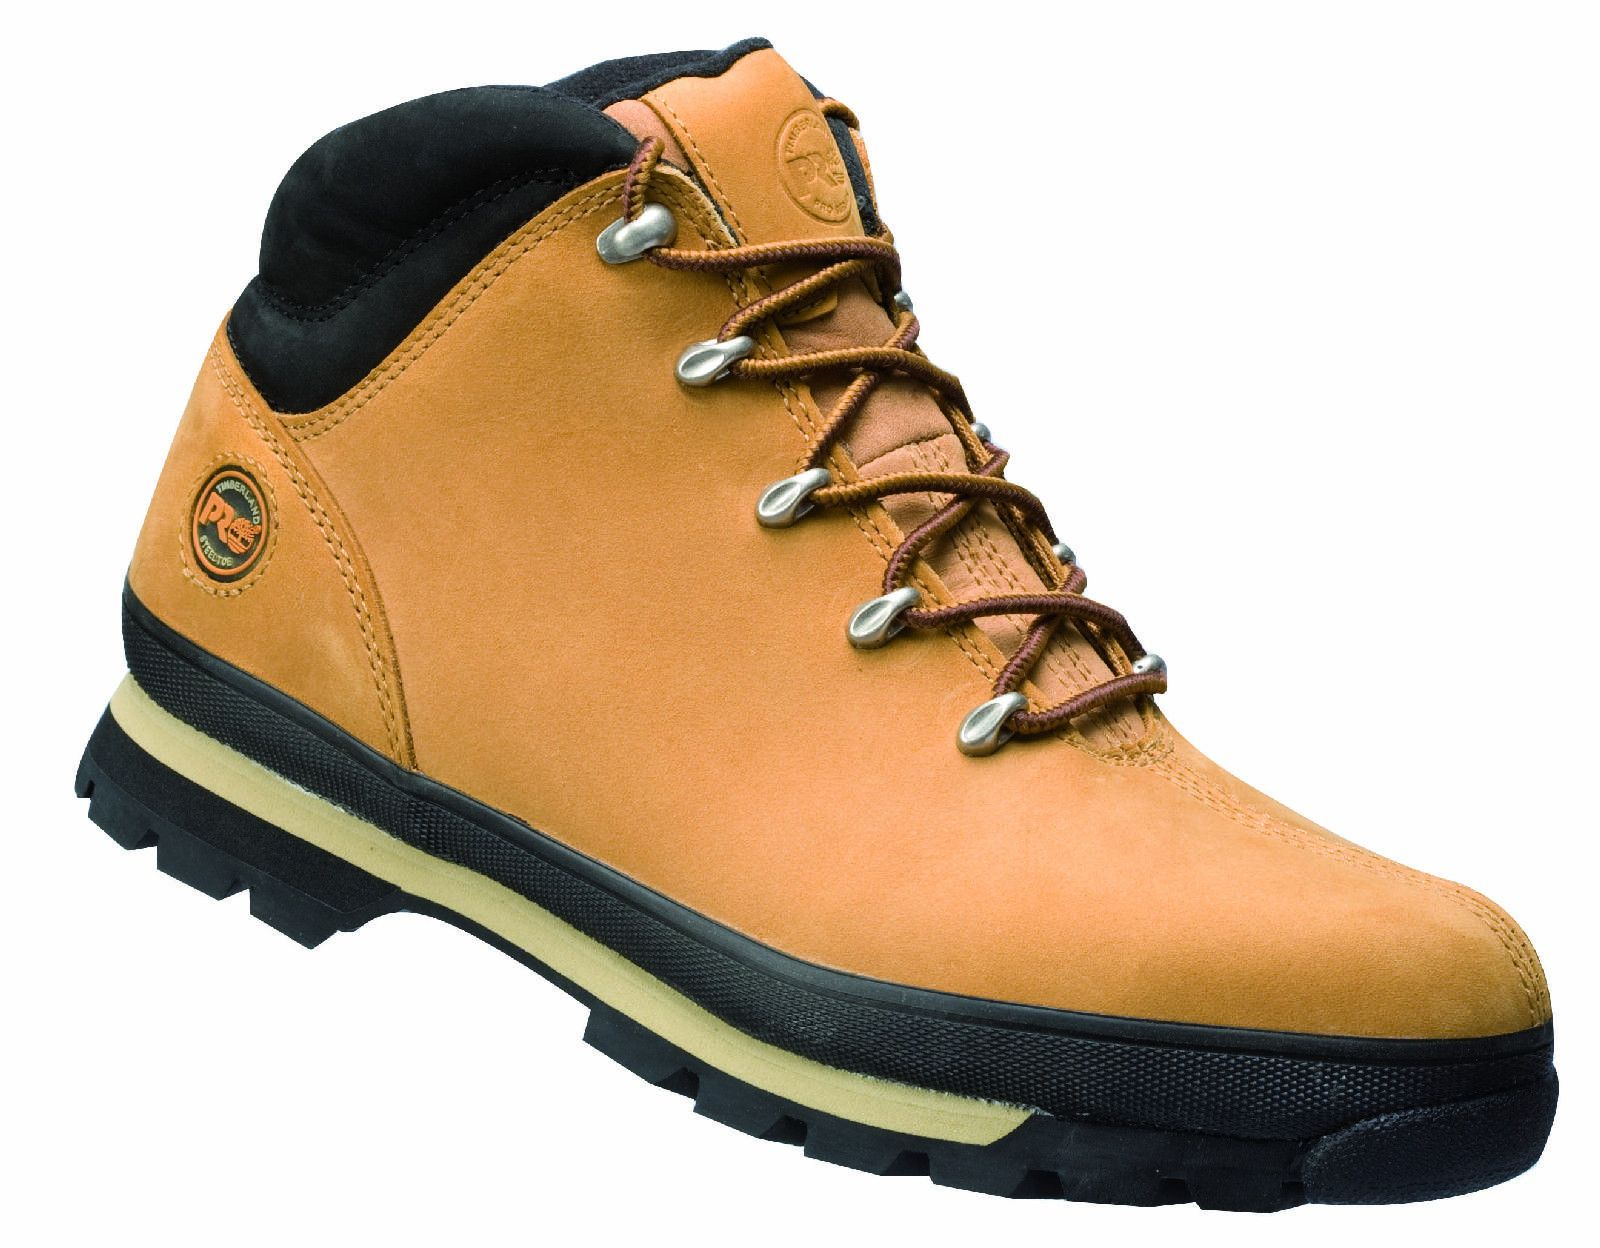 Timberland Pro Splitrock S3 Rating Steel Toe Work Safety